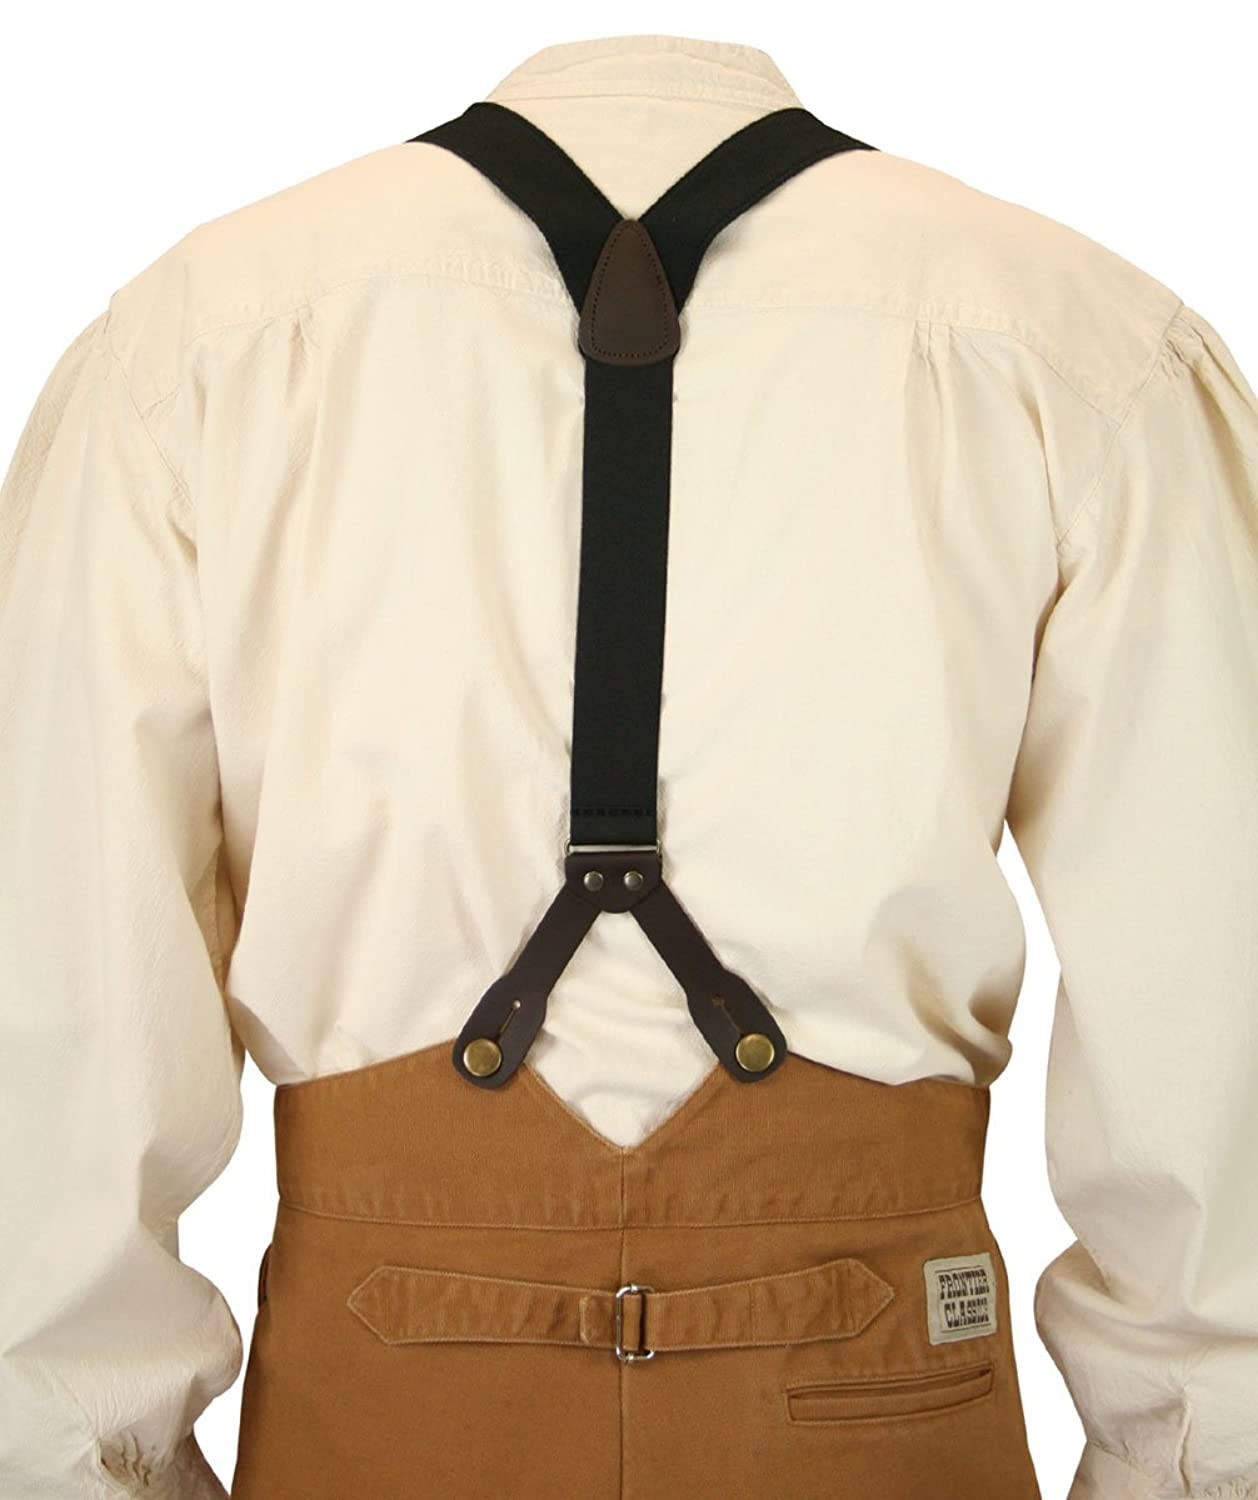 Edwardian Men's Accessories Historical Emporium Mens Canvas Stagecoach Y-Back Suspenders $27.95 AT vintagedancer.com